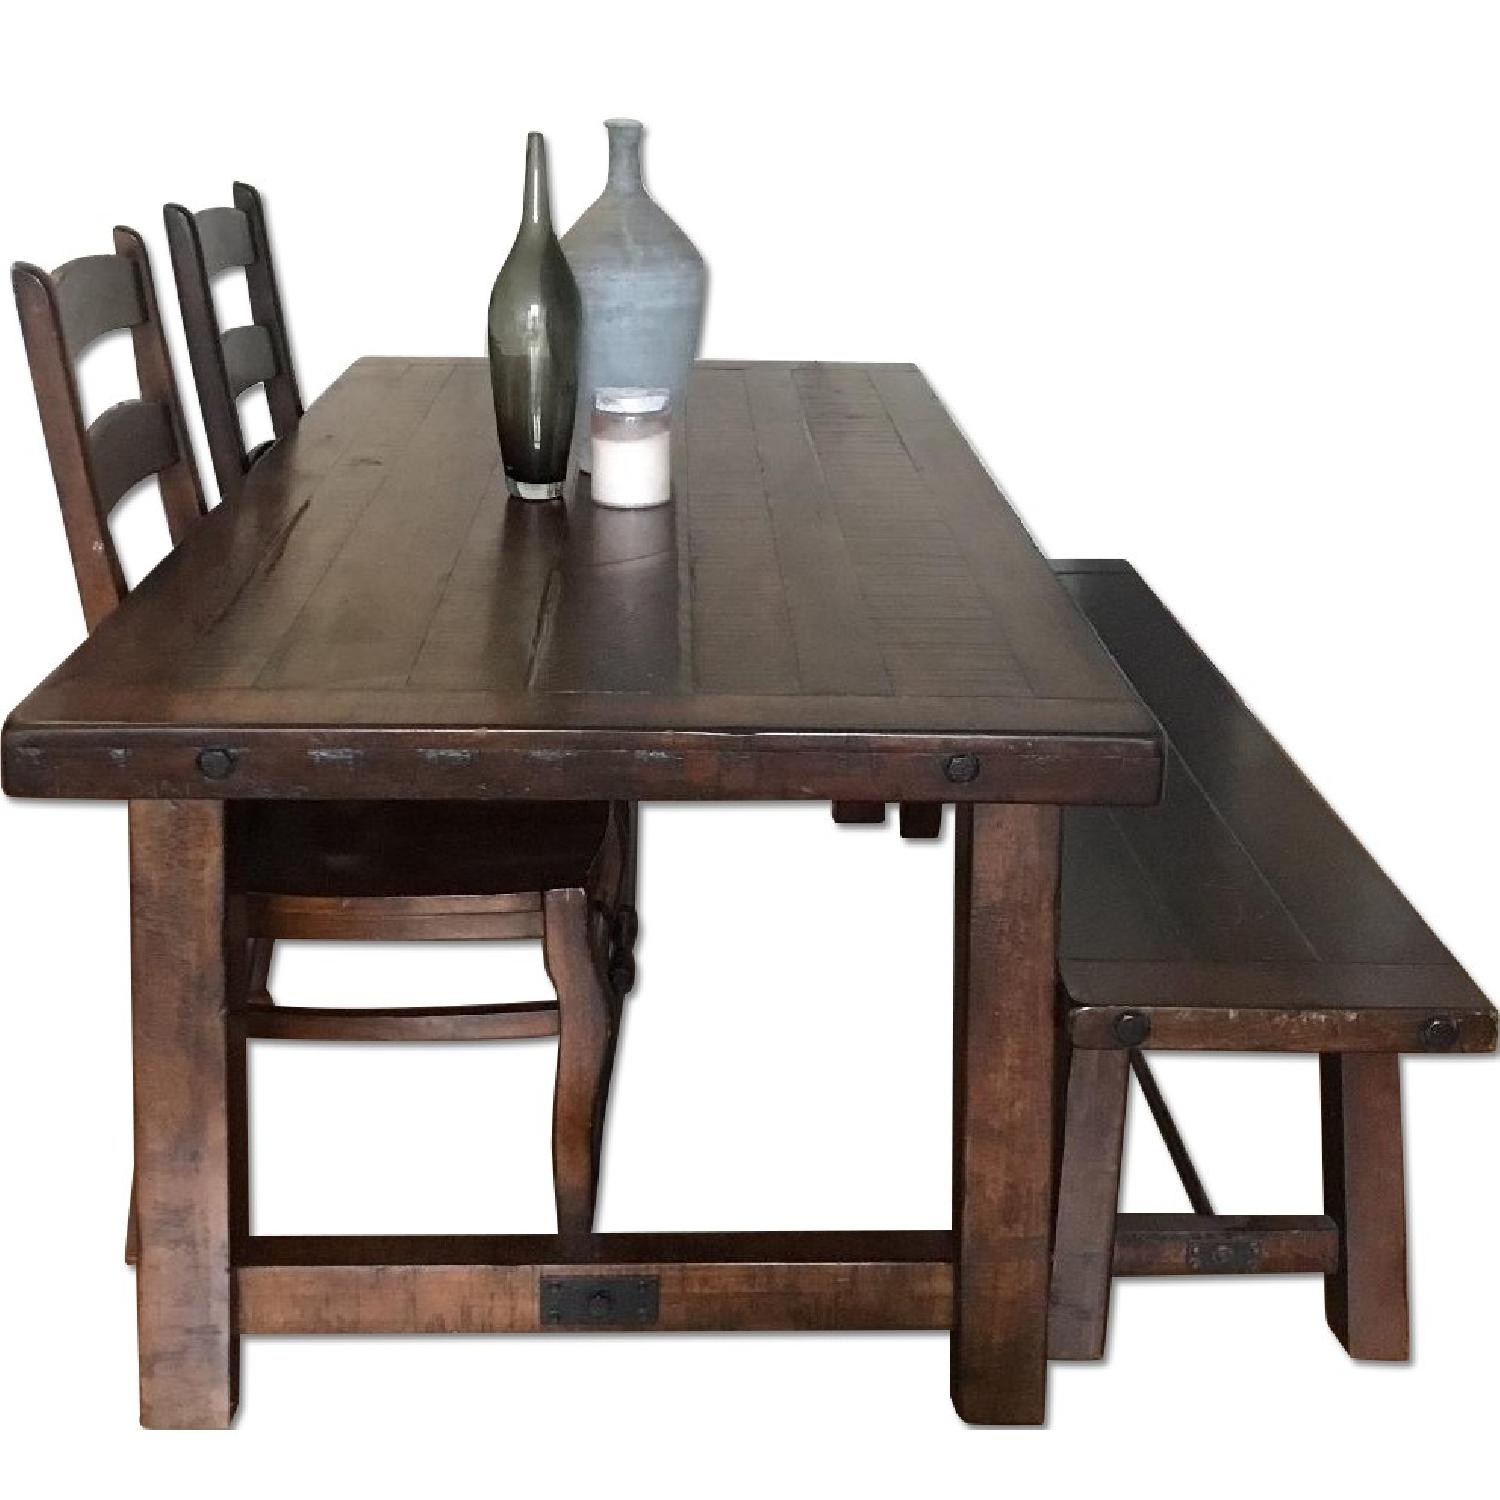 Pottery Barn Rae Rustic Wood Bistro Table W Chairs AptDeco - Pottery barn benchwright end table